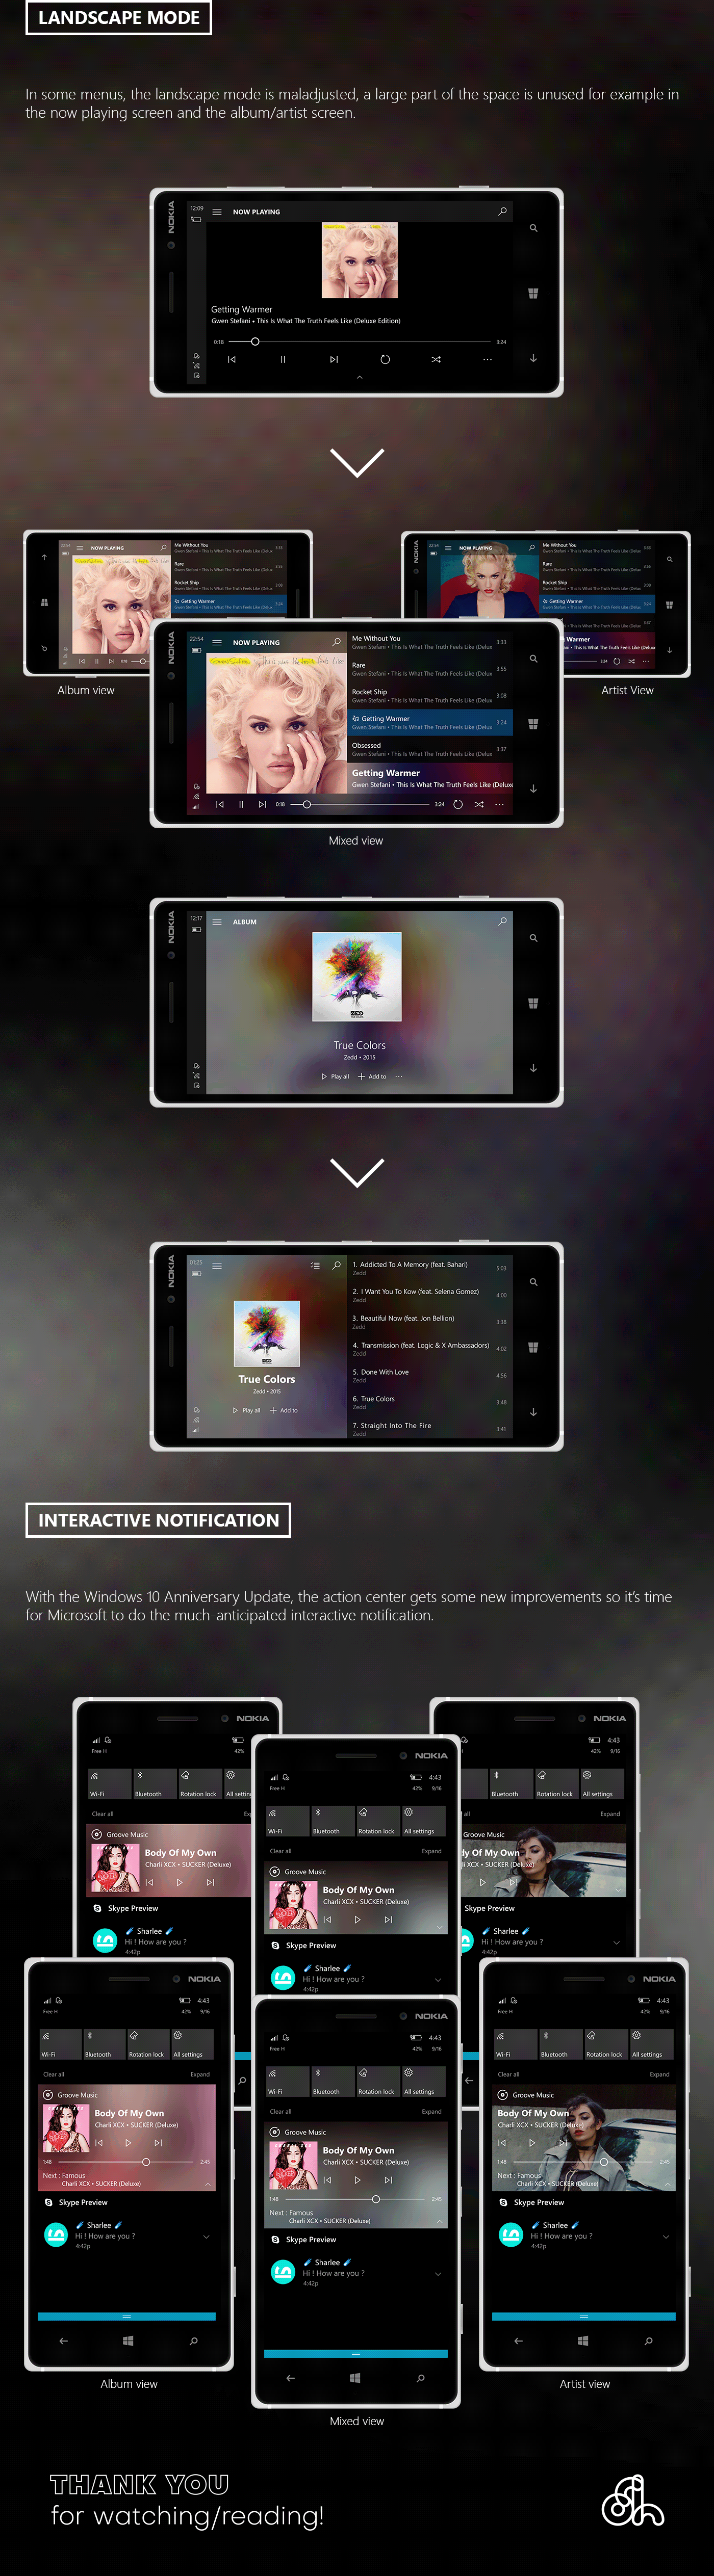 windows groove redesign concept color blur windows 10 Groove Music Microsoft